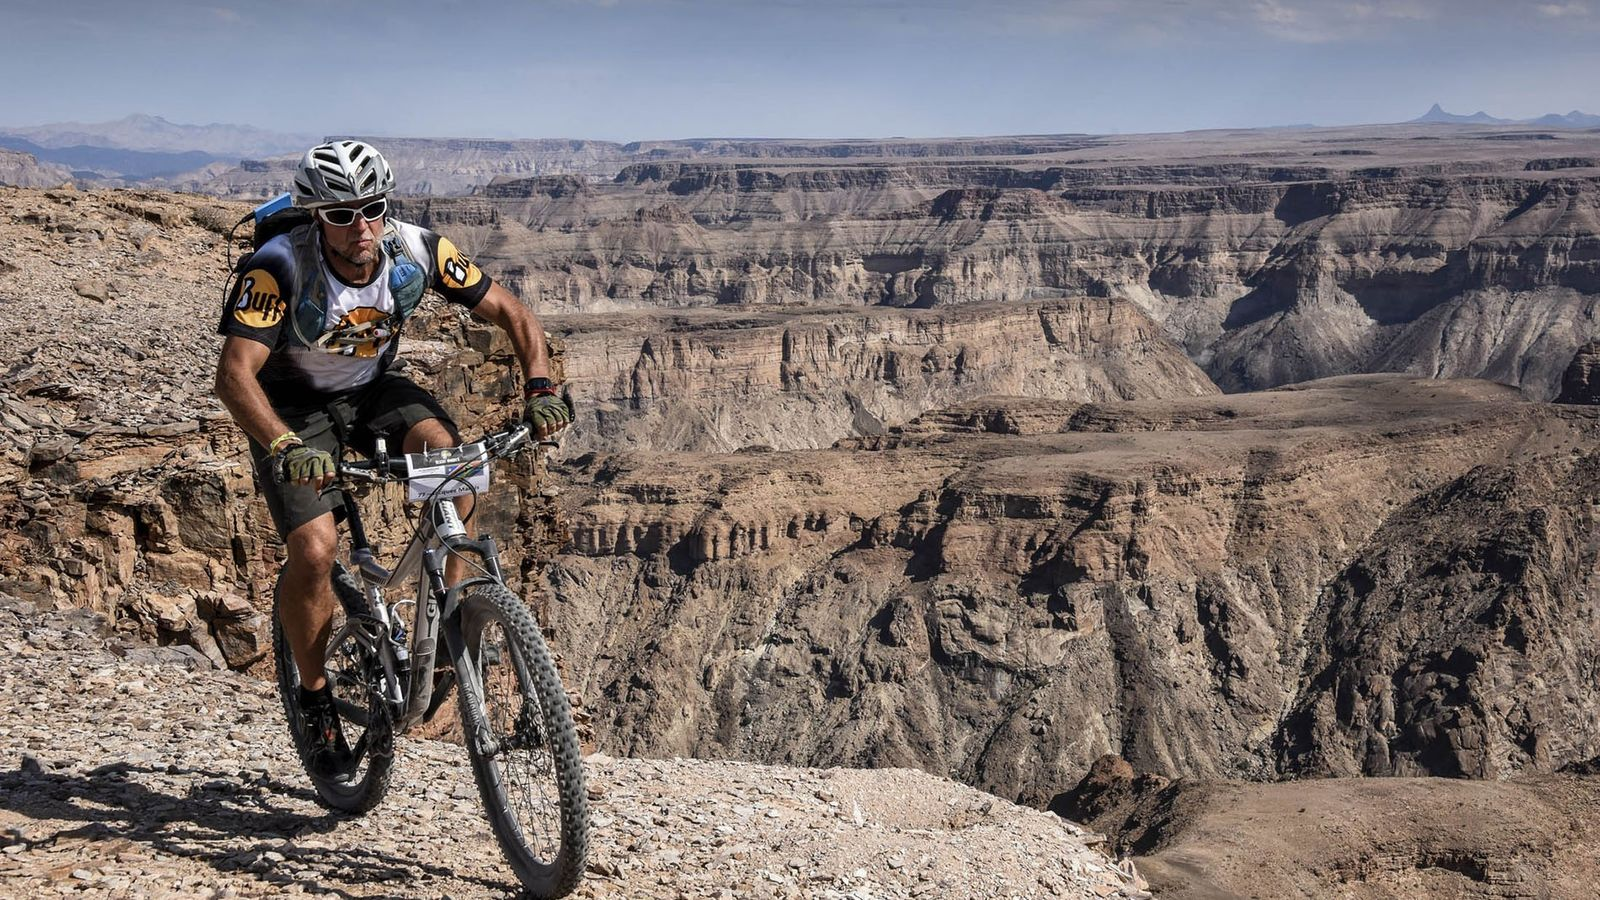 The Northern Cape provides amazing opportunities for mountain biking amongst dramatic scenery.